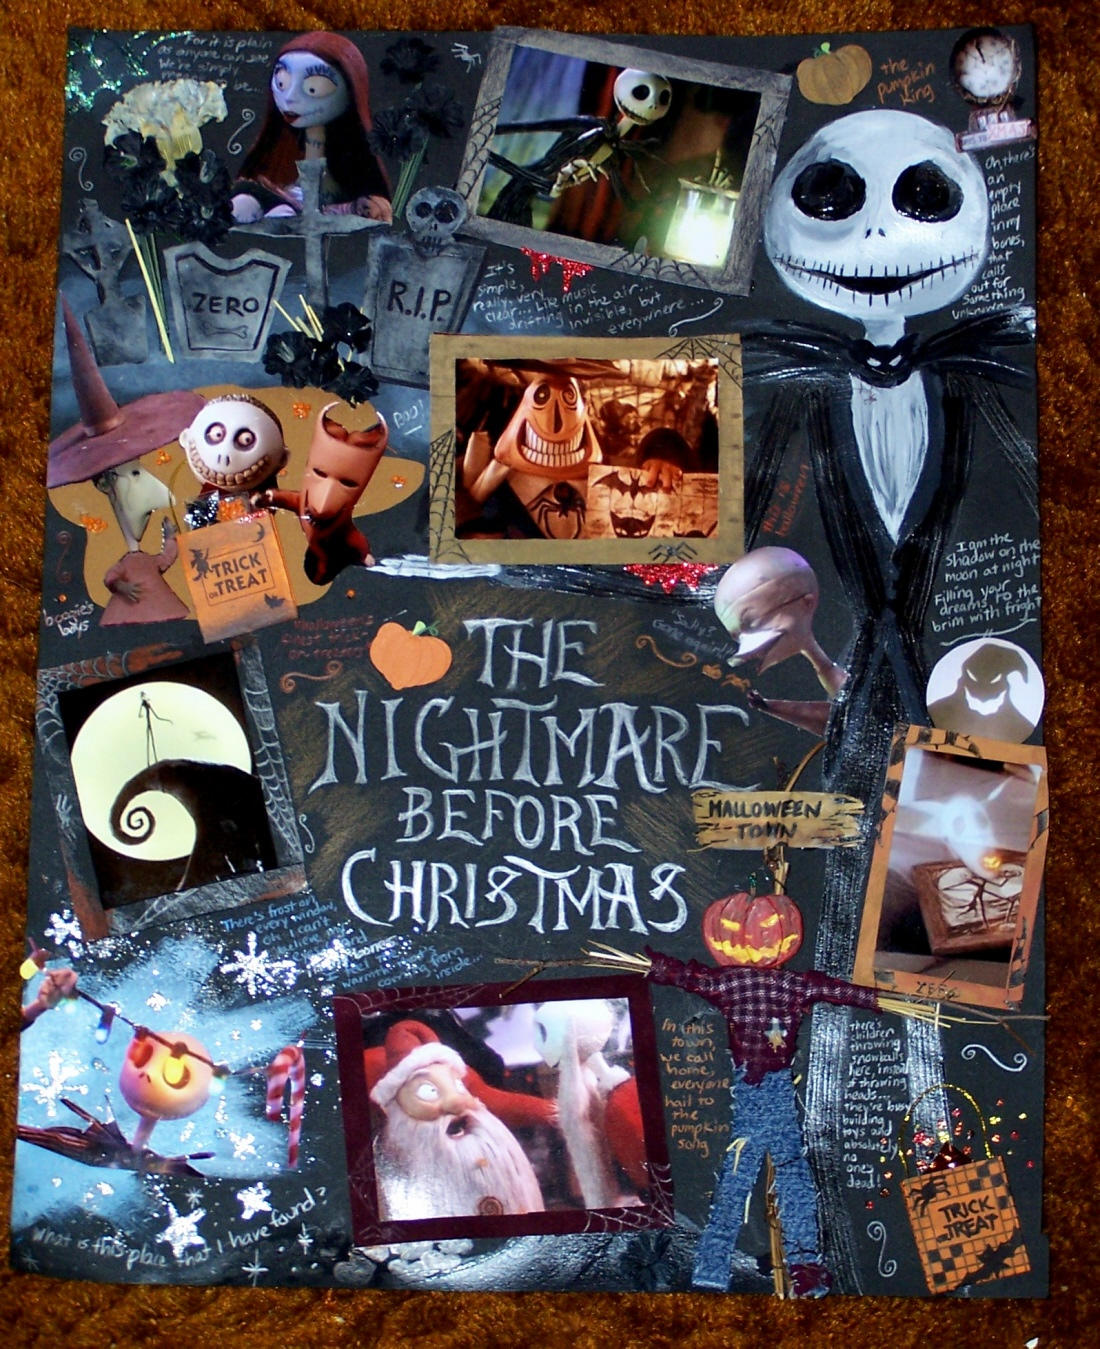 Pin Nightmare Before Christmas Wrapping Paper Images to Pinterest